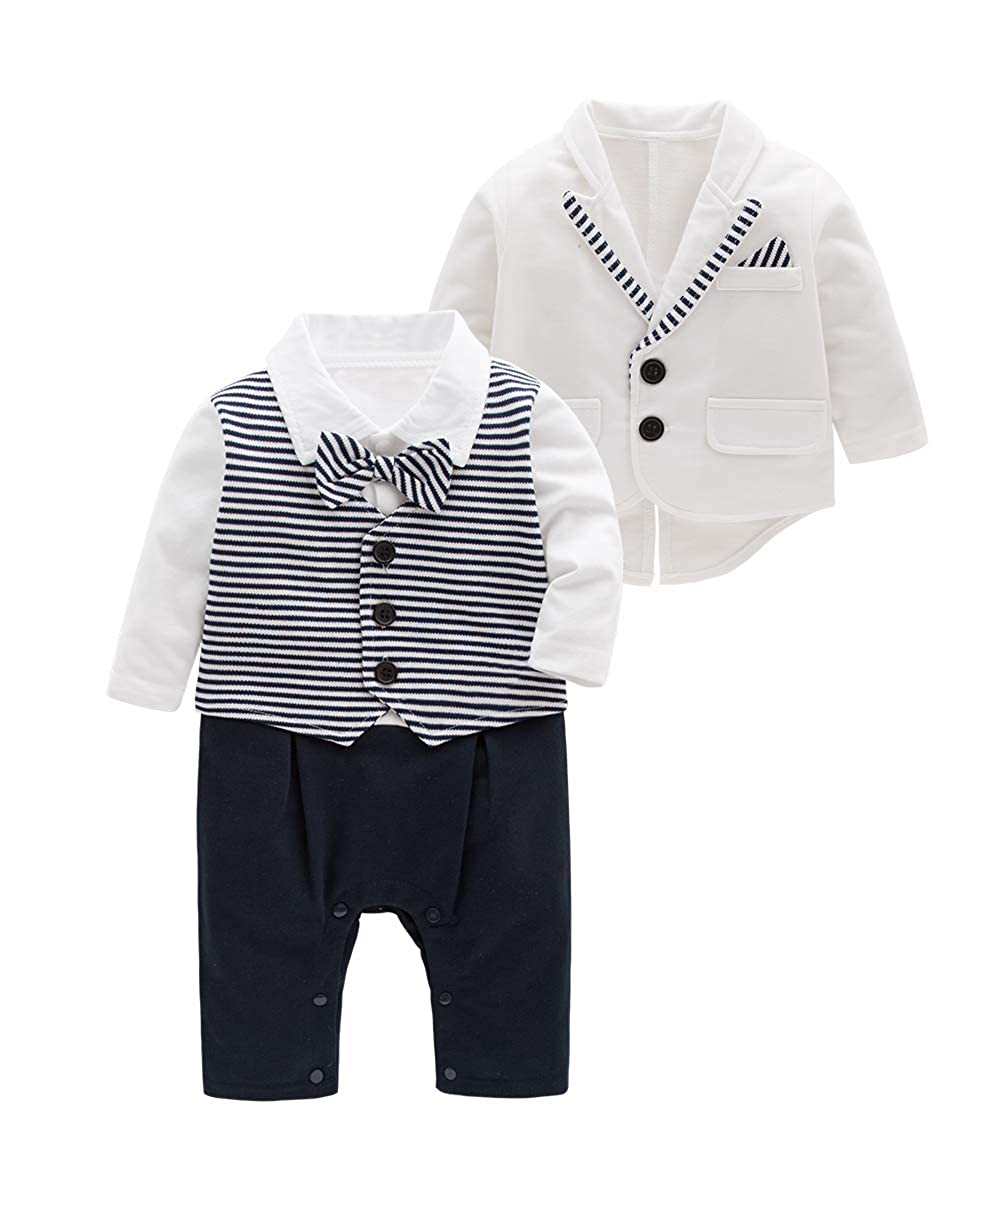 Mays Baby Boys Blazer Long Sleeves Gentleman Romper with Bowtie Outfit 2 Pieces Sets